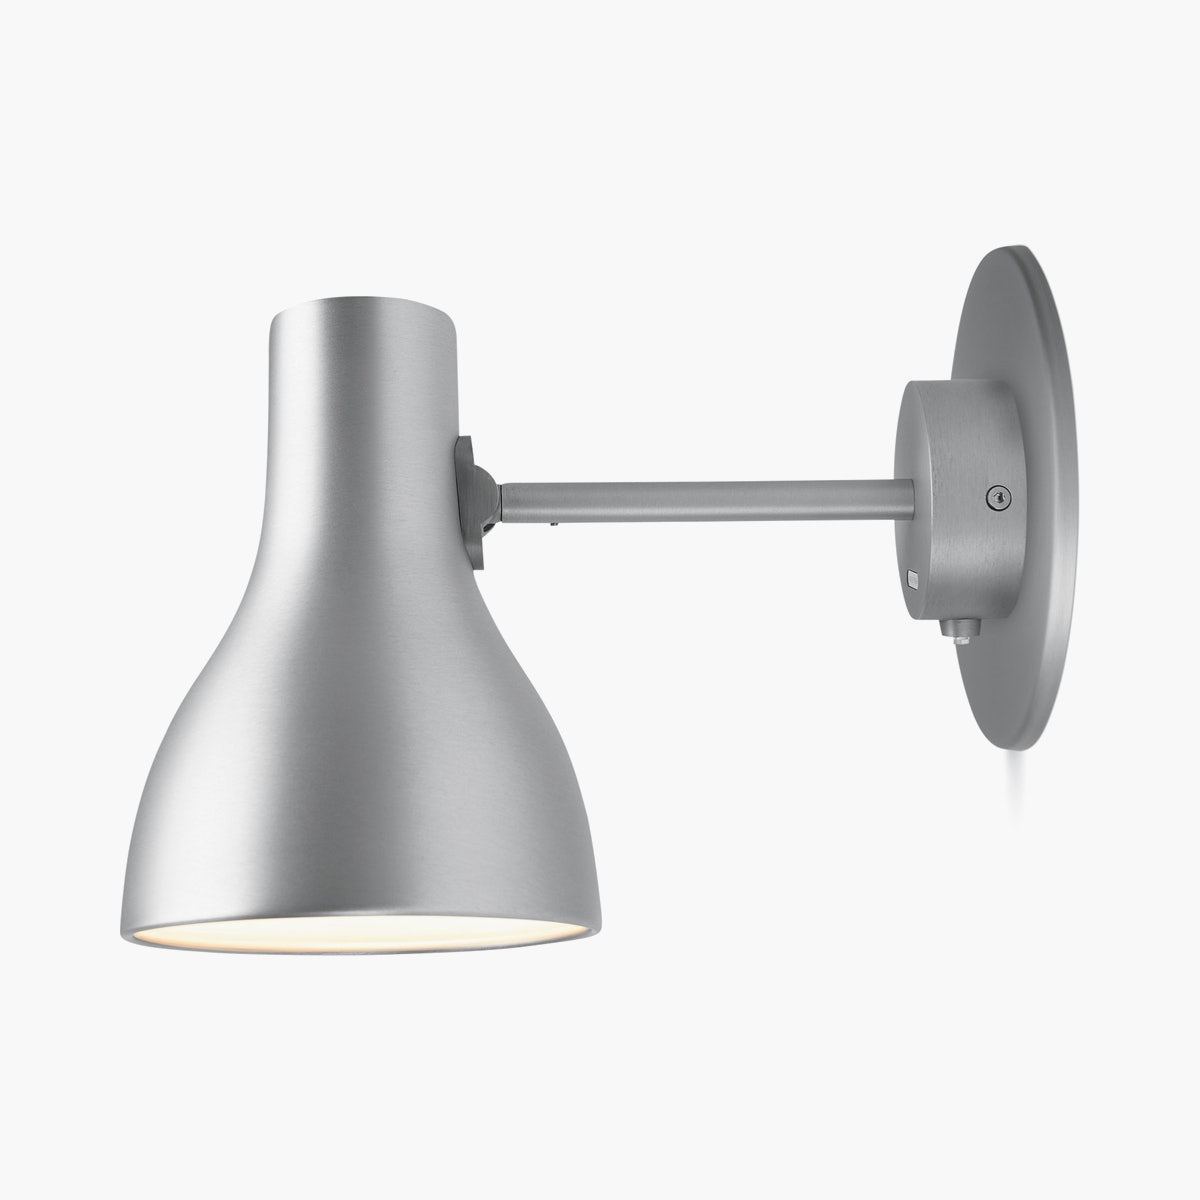 Type 75 Wall Sconce